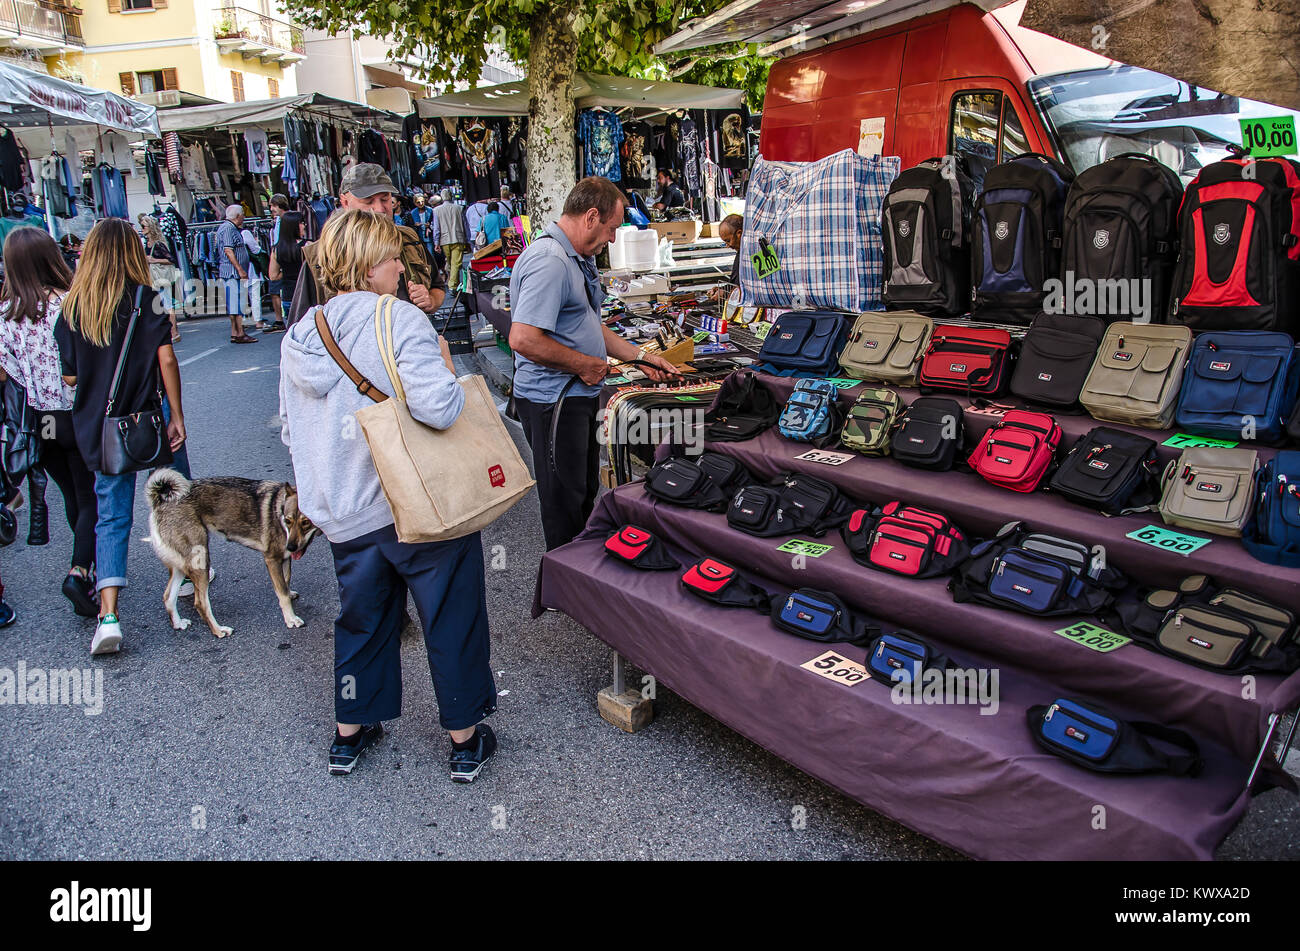 Street markets, sounds and smells, local products, handcrafts - all this and more awaits you in the typical local - Stock Image